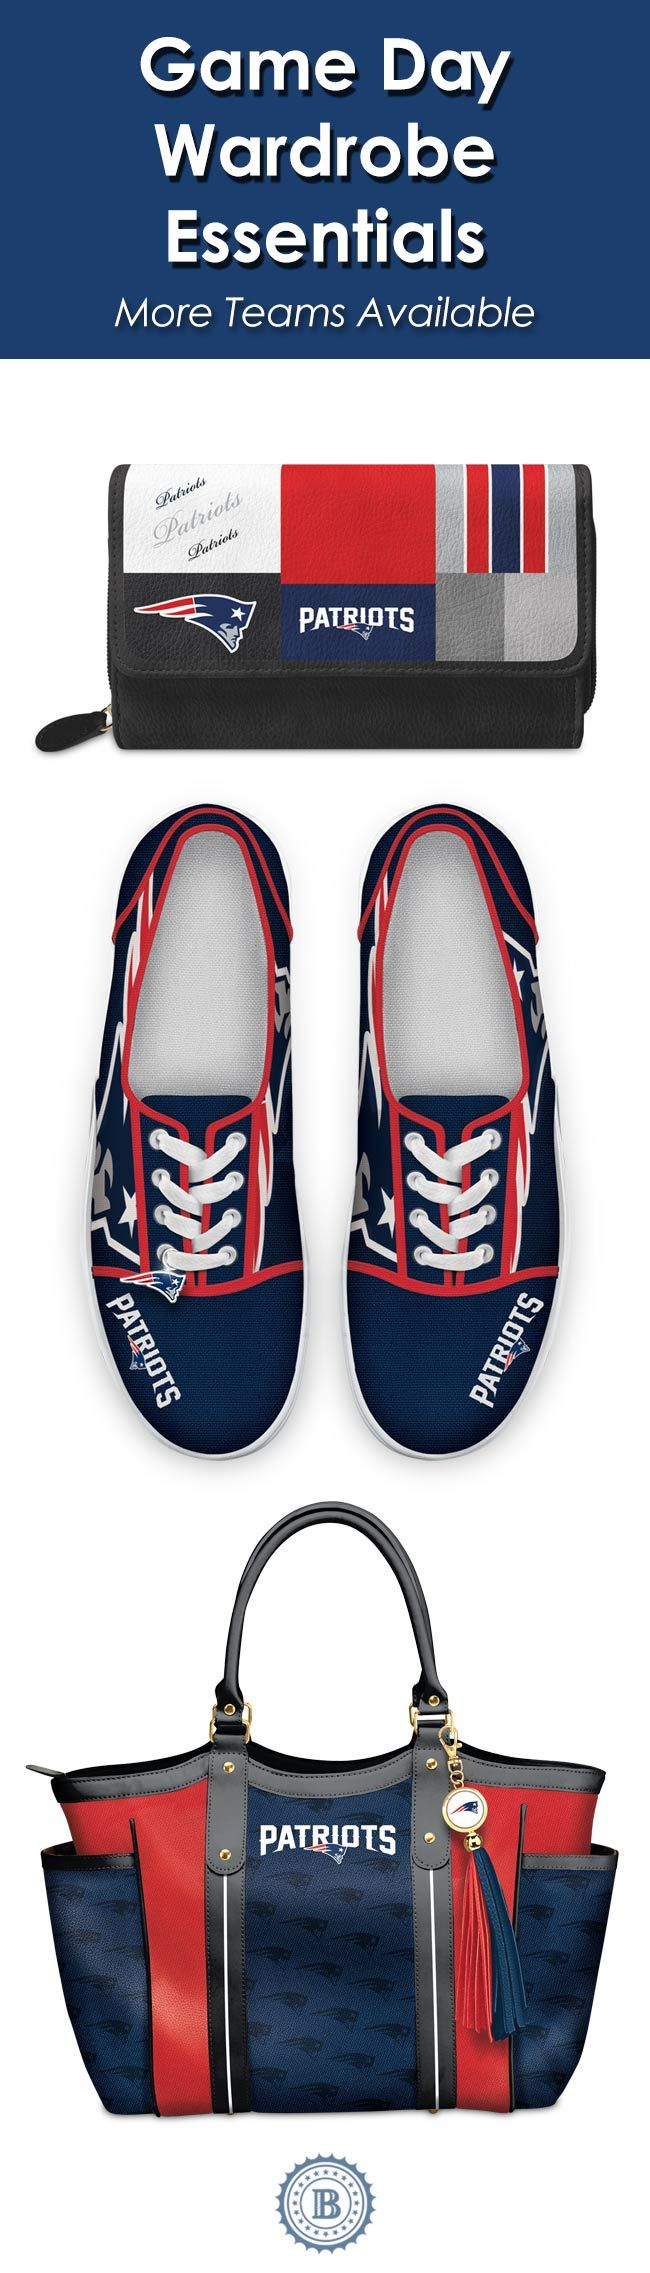 Sport your Patriots passion with our officially-licensed NFL apparel and accessories. We offer winning selections of wardrobe essentials so you can show off your stylish Patriots loyalty on the field, on the couch or on the go.